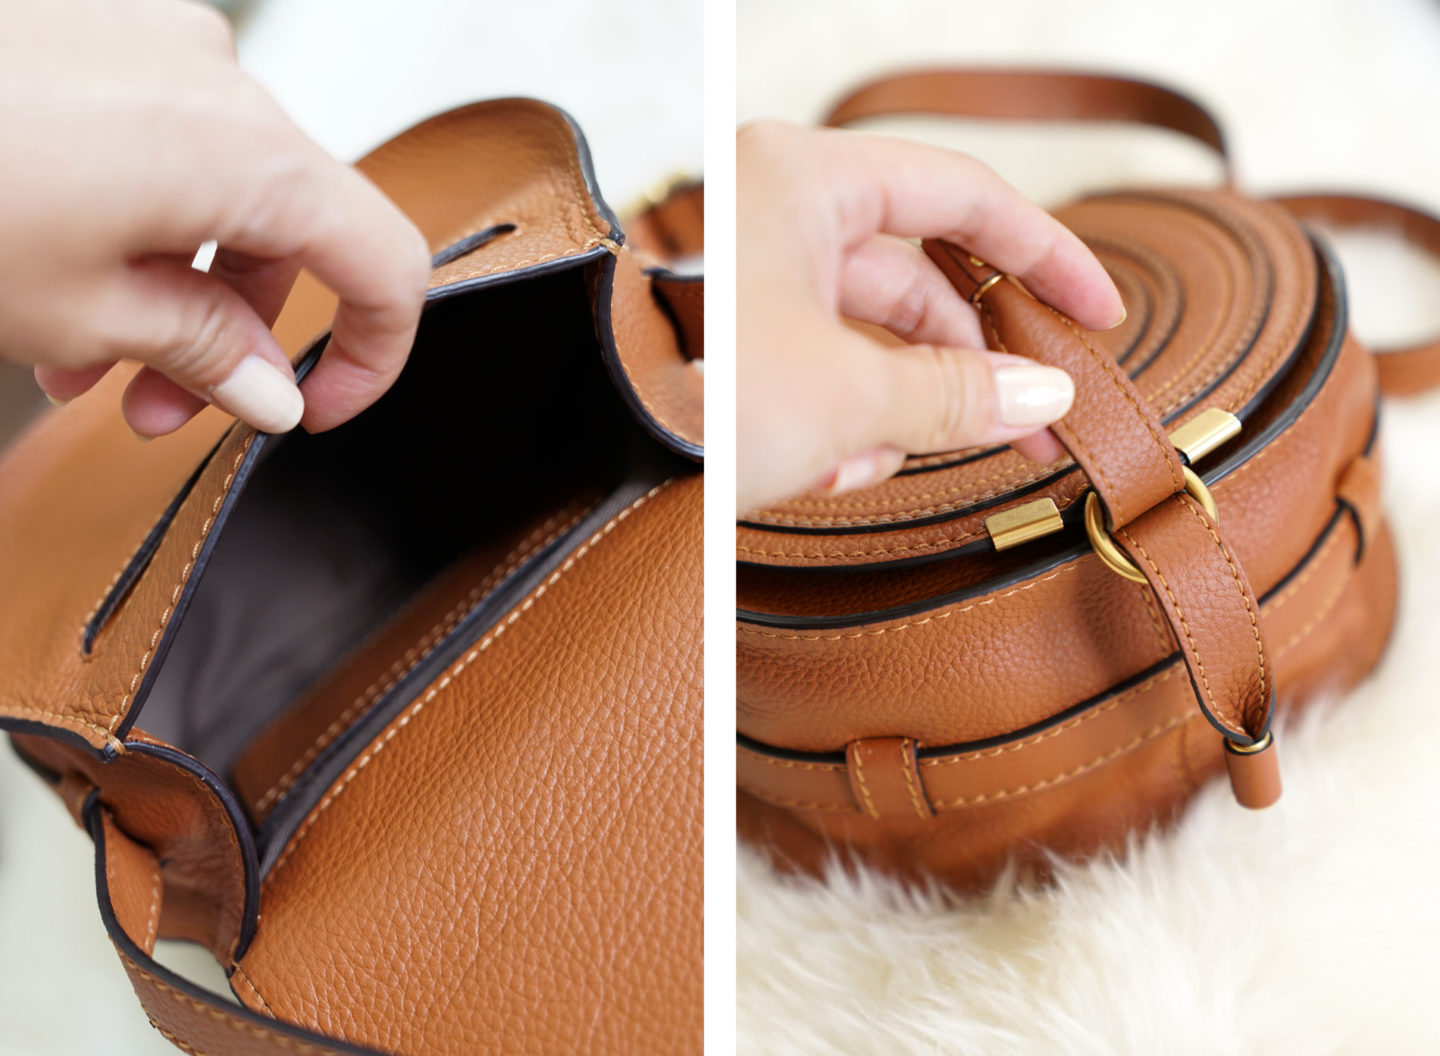 Chloe Mini Marcie Bag Interior Poclet and Clasp | The Beauty Look Book